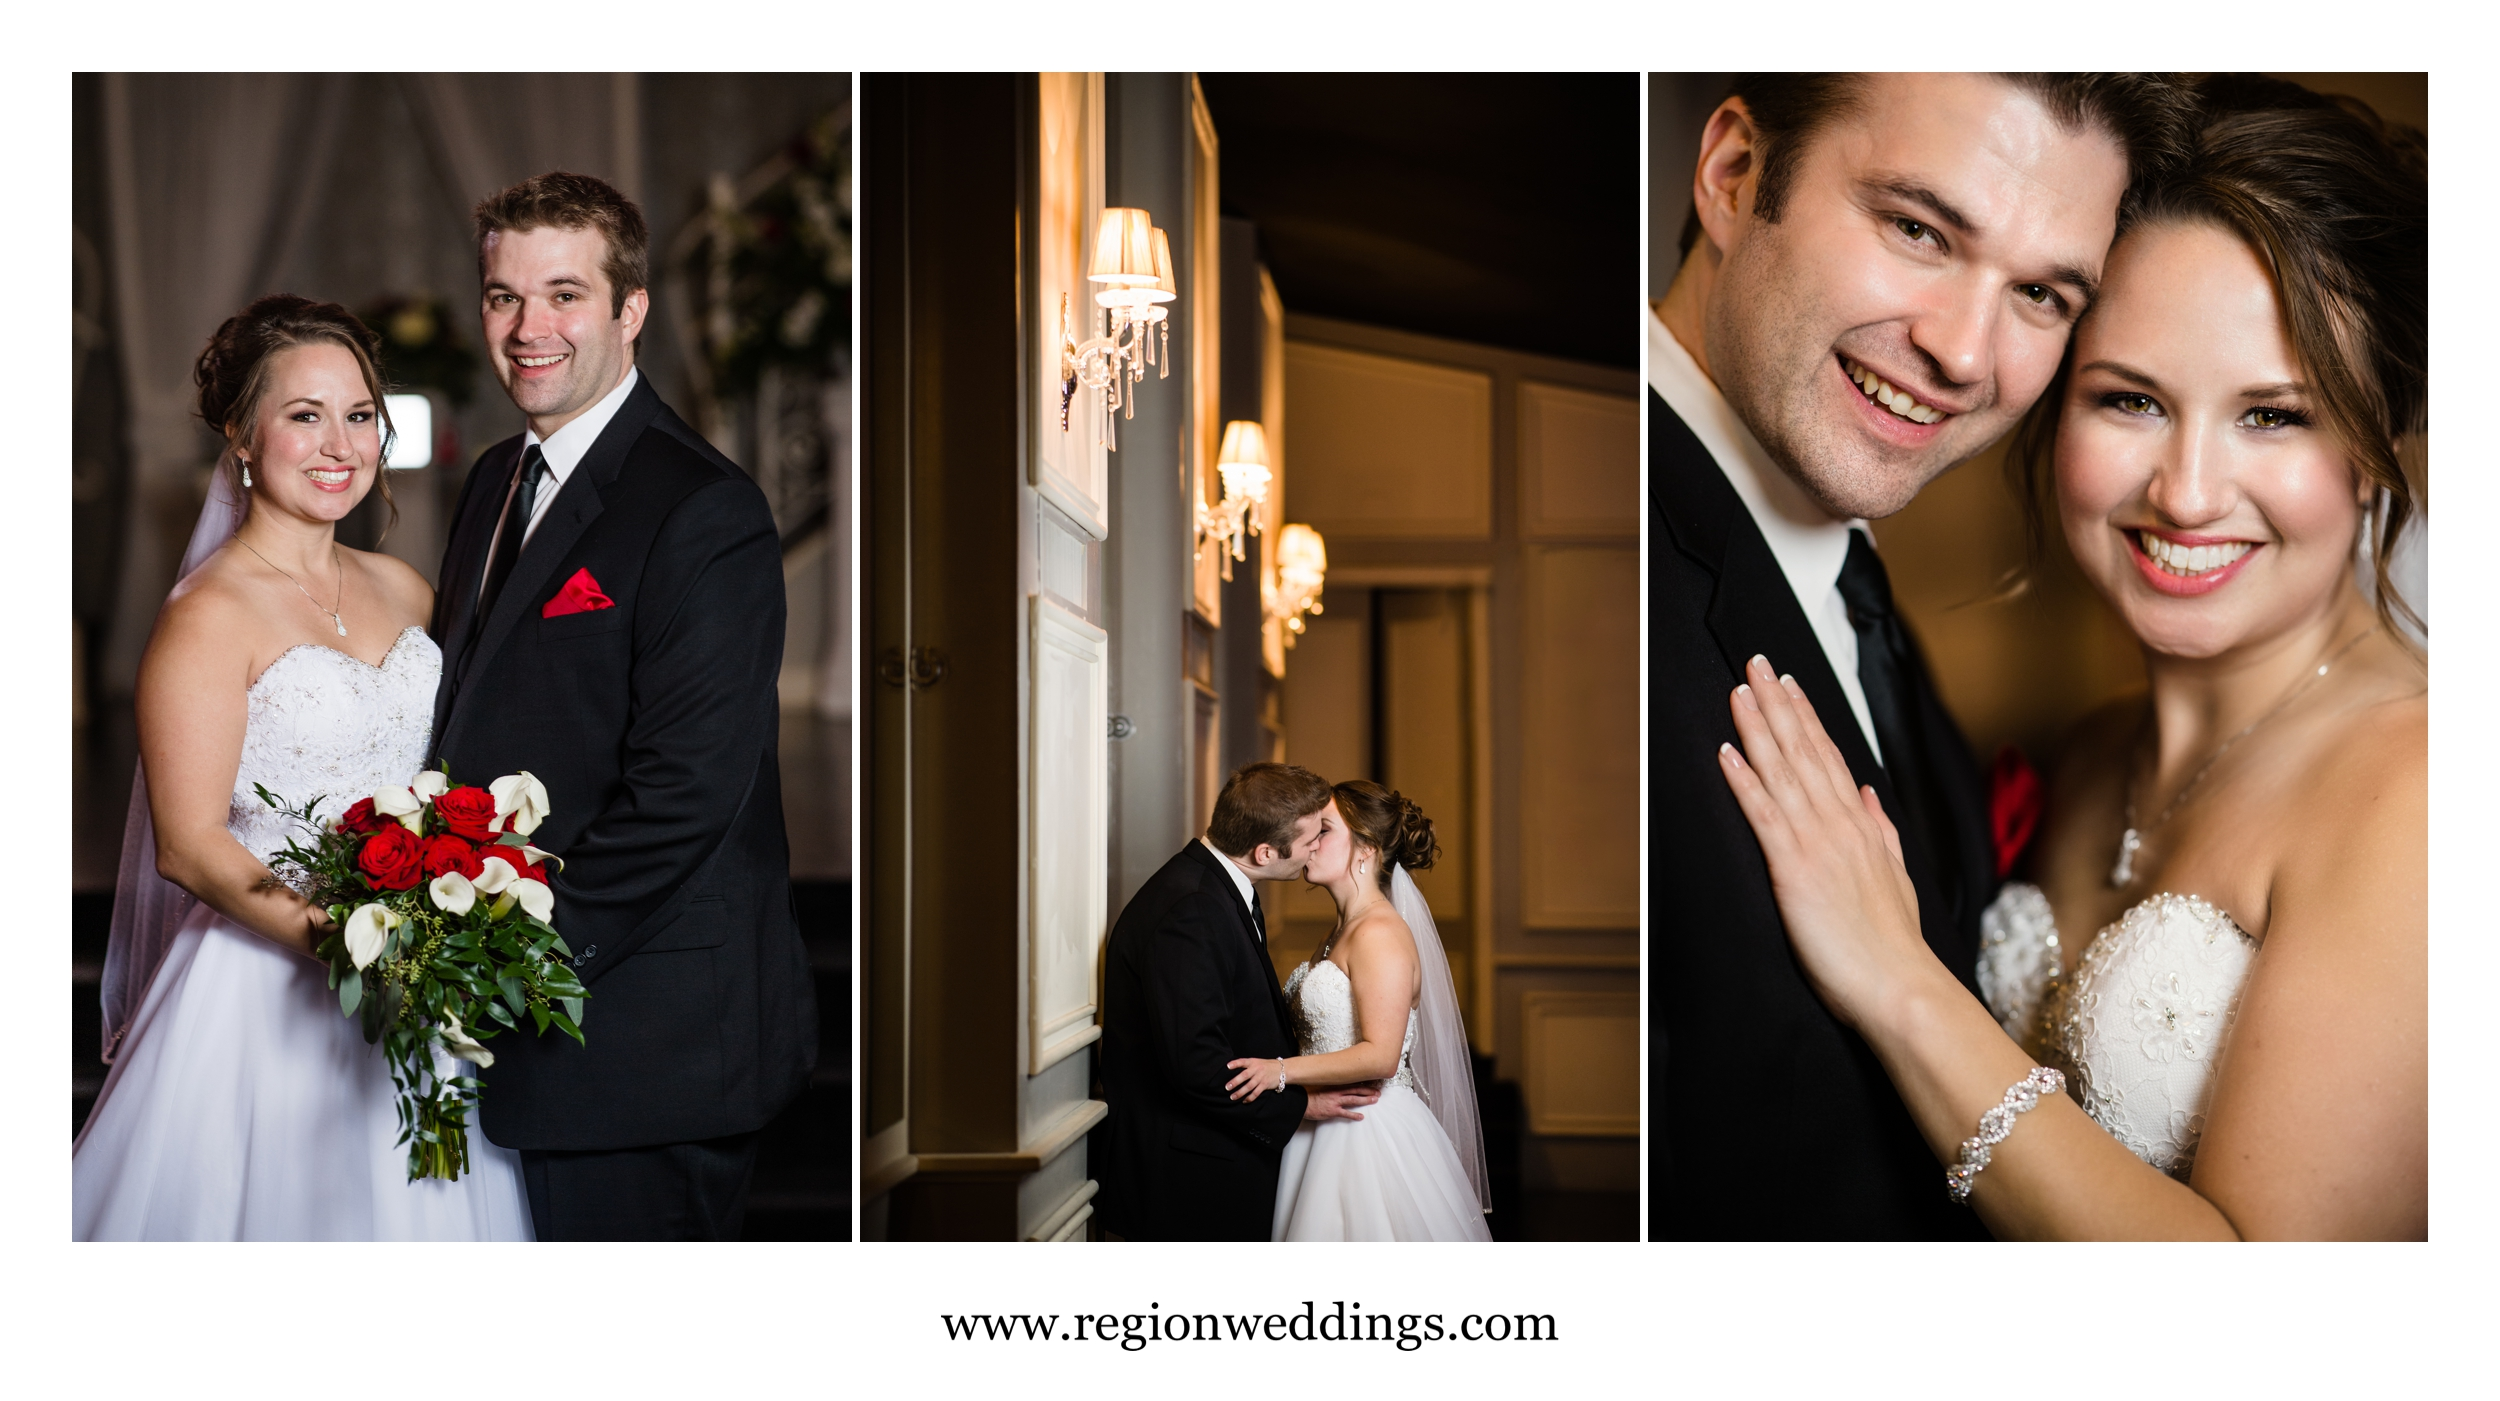 Bride and groom portraits at a winter wedding at Uptown Center.